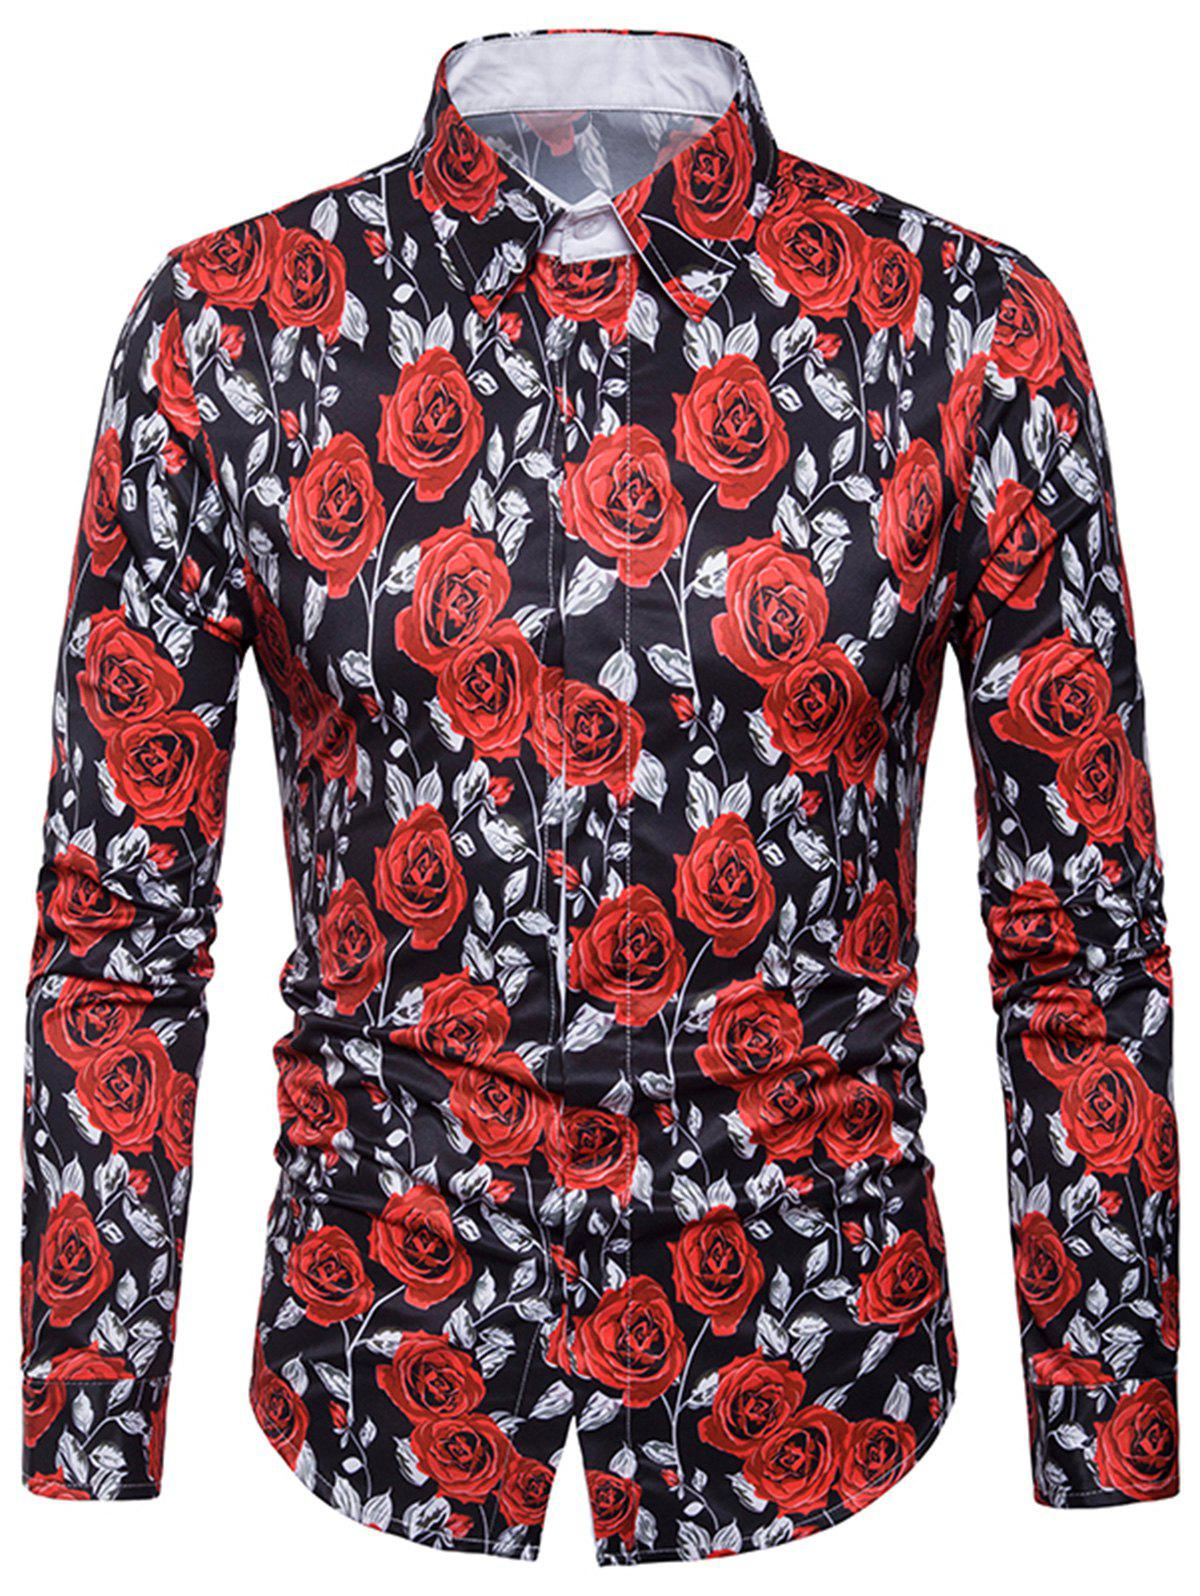 Cover Placket 3D Roses Print Valentine's Day Shirt - BLACK L